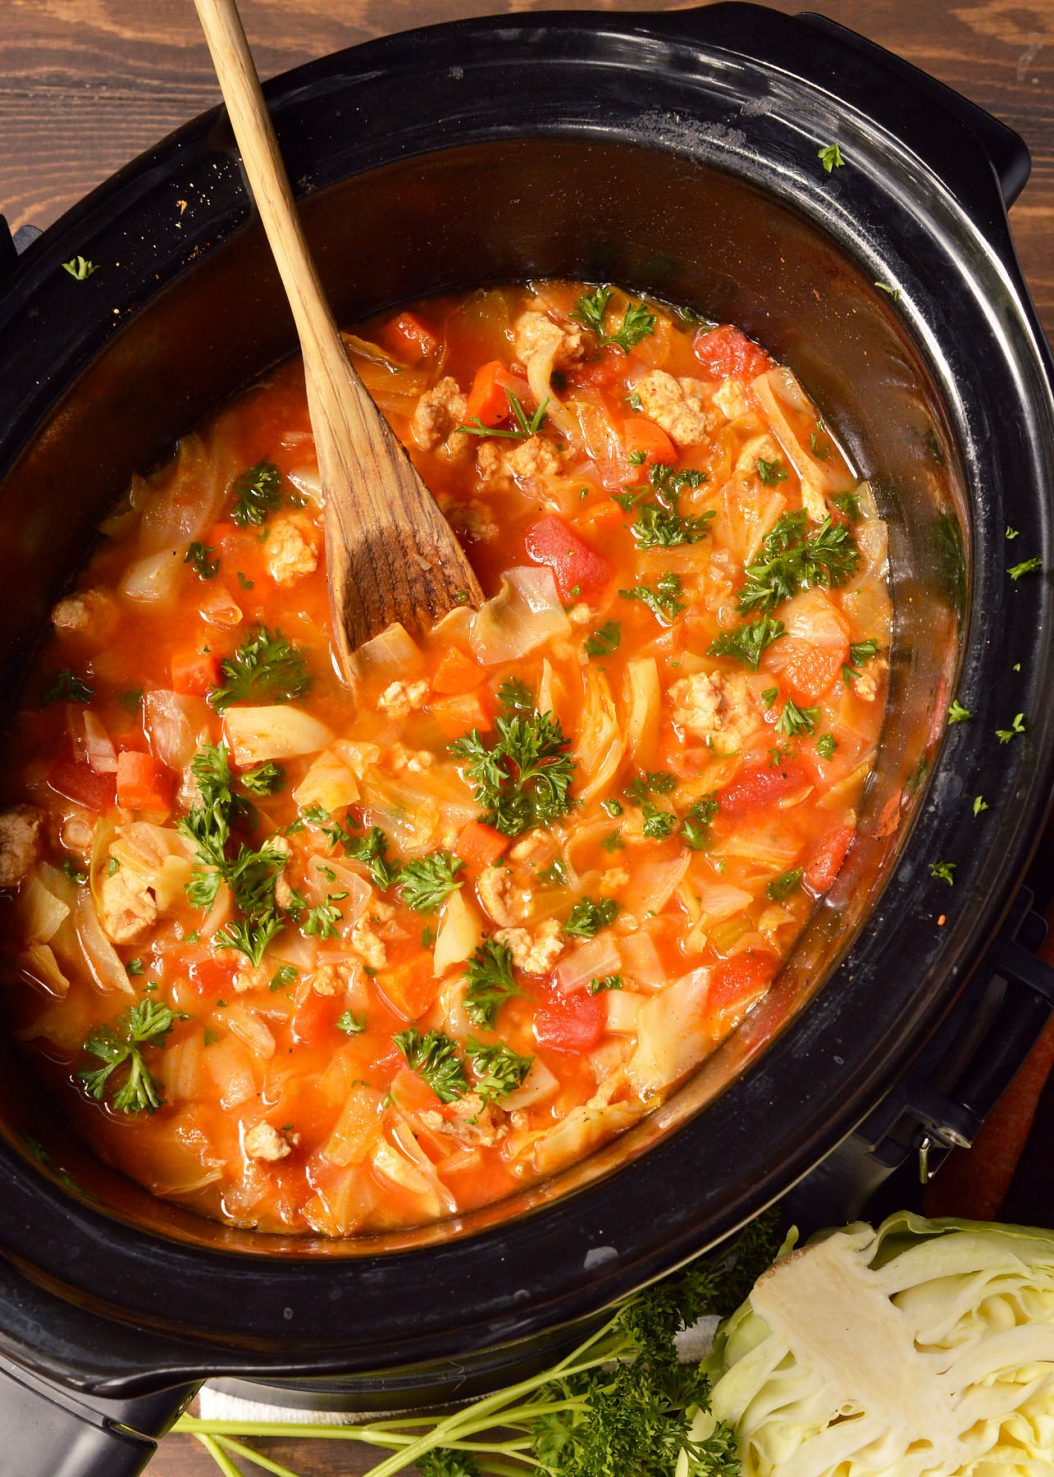 Keep warm and cozy with this Slow Cooker Cabbage Roll Soup. This soup recipe is easy, filling and healthy! Just toss a few simple ingredient into your slow cooker and dinner will be waiting for you. This is a Whole30, Paleo compliant recipe. #whole30recipes #paleorecipes #whole30 #paleo #cabbagerolls #slowcooker